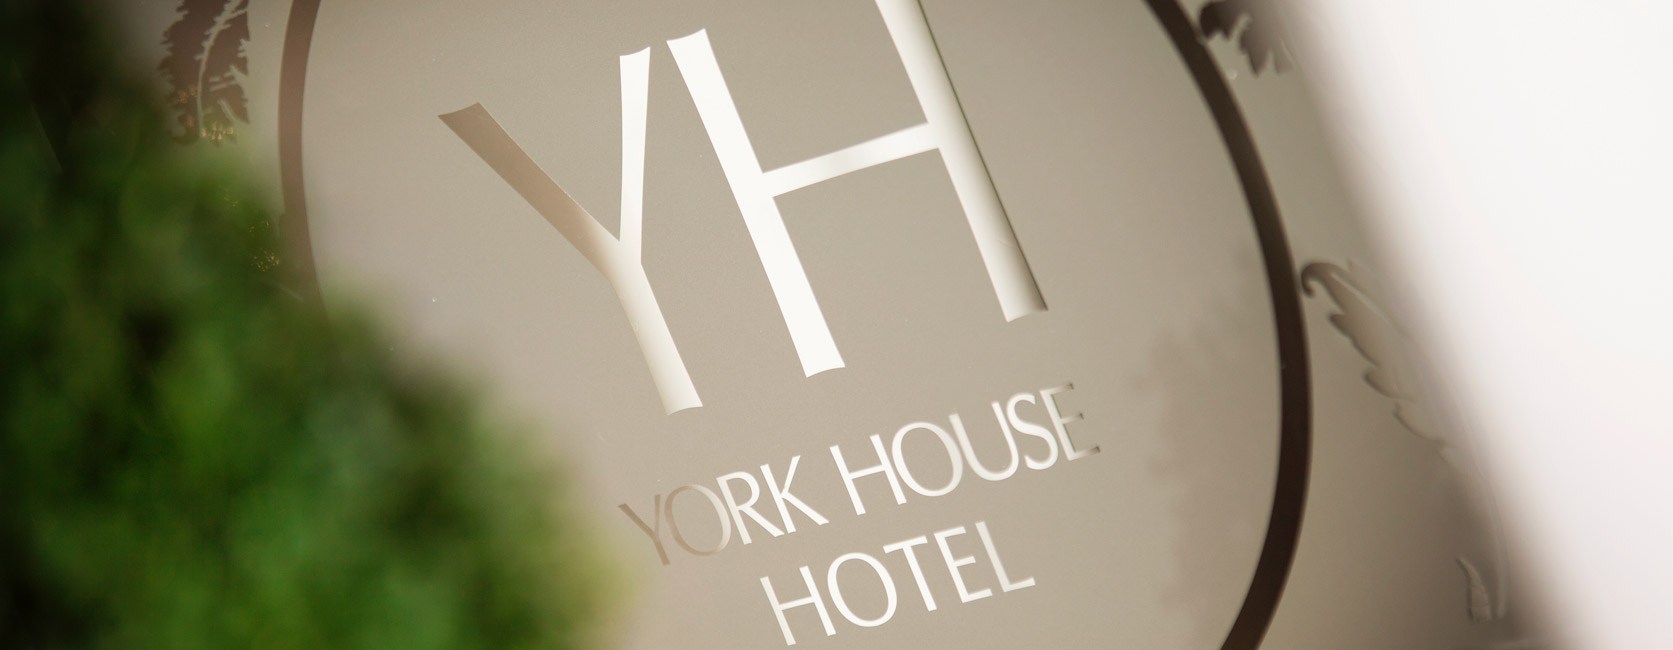 York House Hotel Welcome Sign